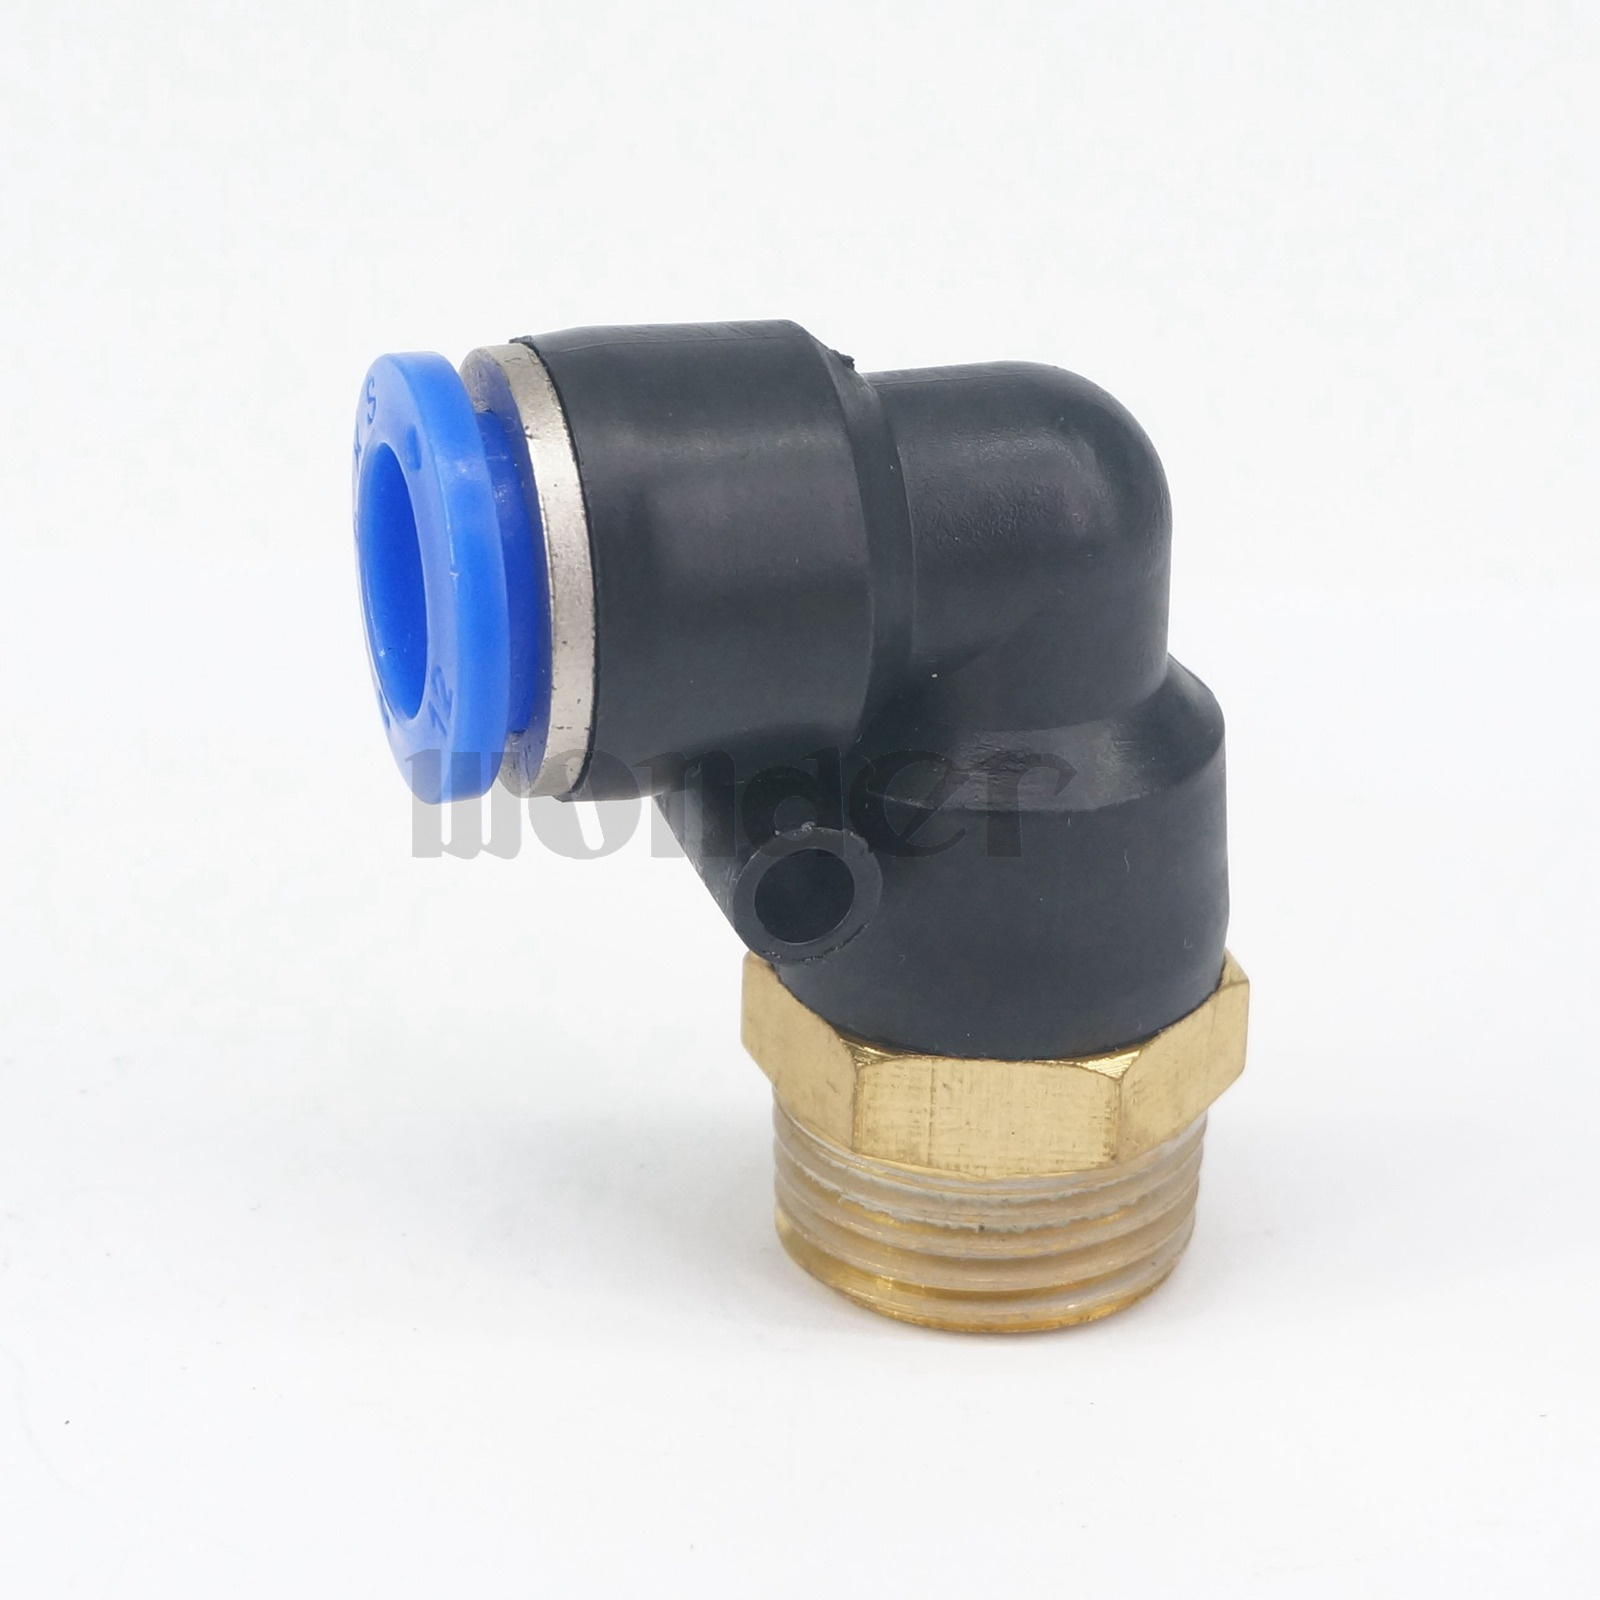 """4 X Pneumatic Male Elbow Connector Tube 12mm Threaded 1//2/"""" NPT Push In Fitting"""